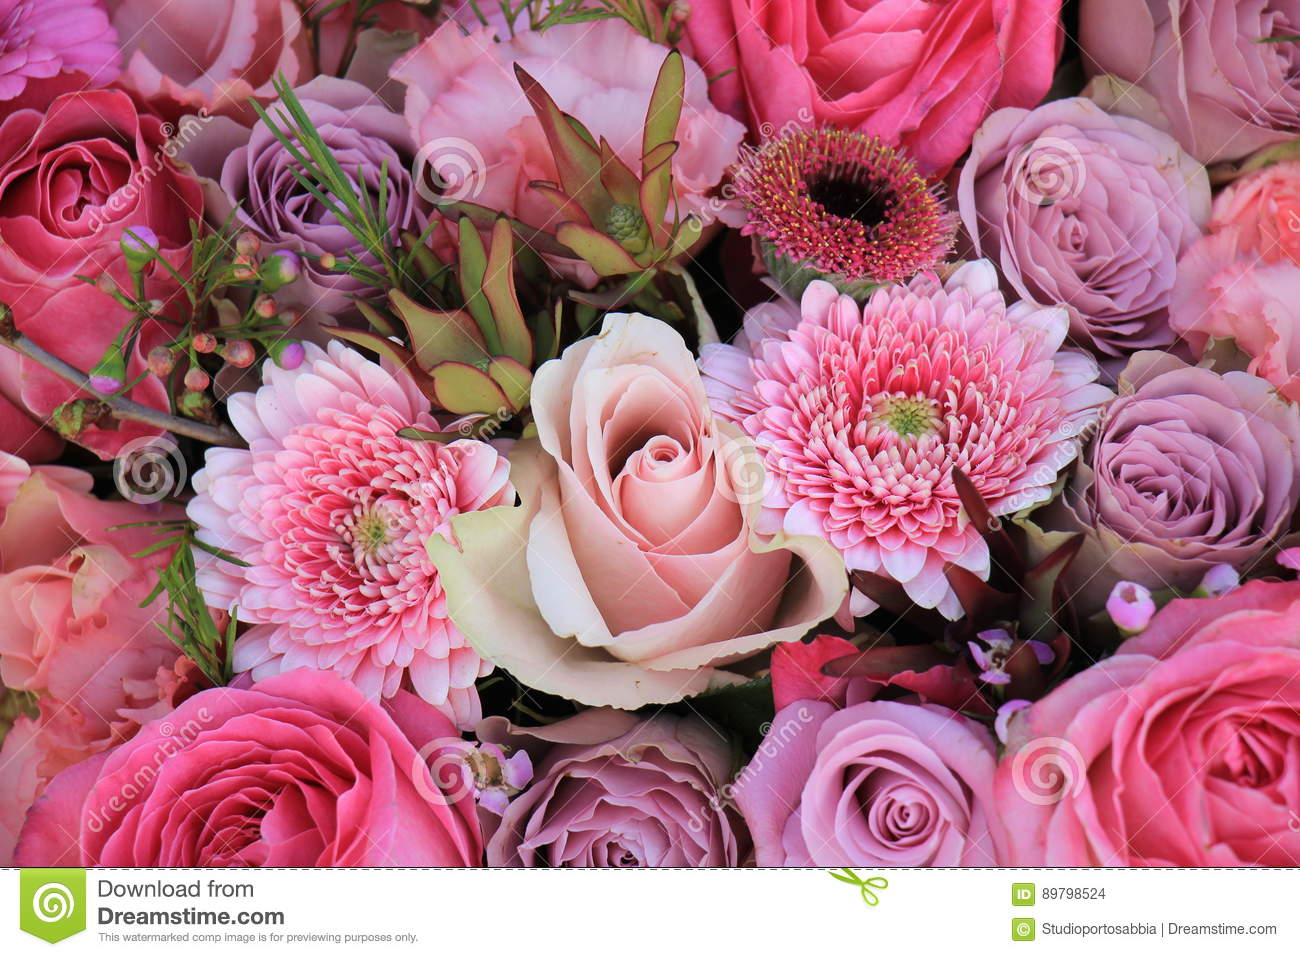 Mixed pink wedding flowers stock photo. Image of flowers - 89798524